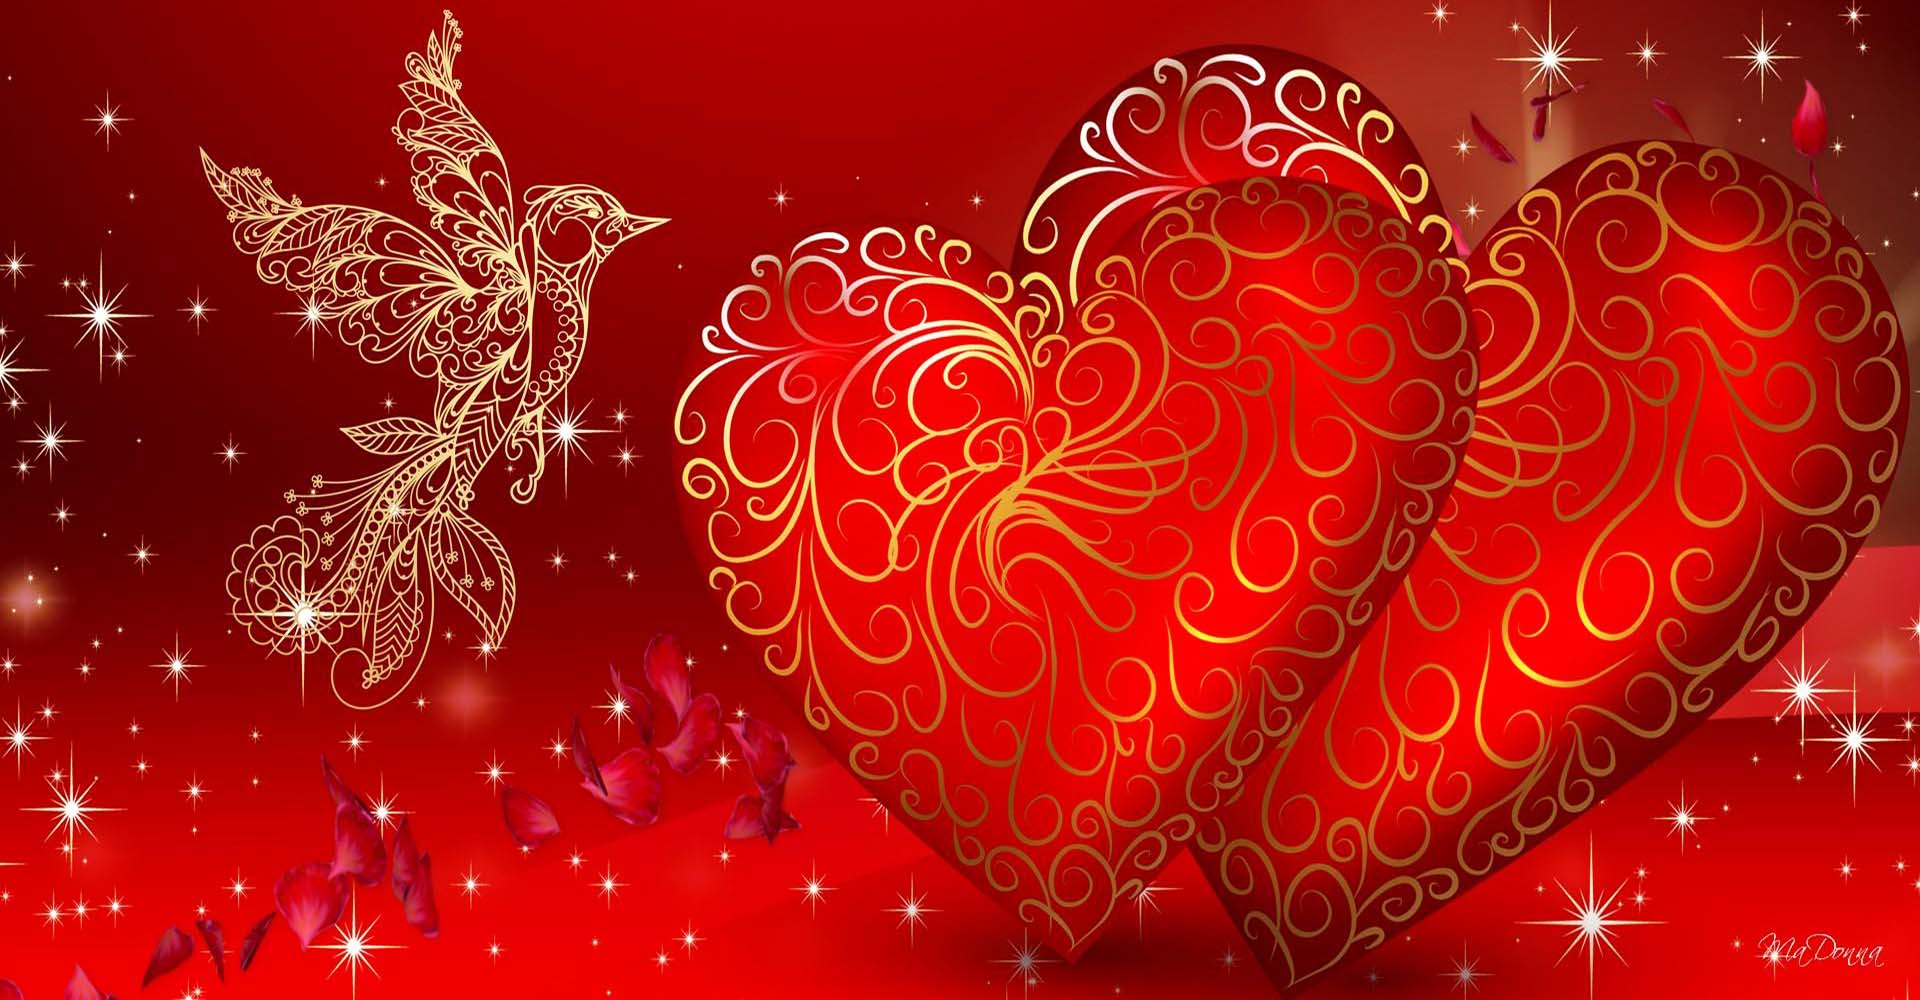 Hot Love Wallpaper In Hd : Love Heart Wallpapers 2016 - Wallpaper cave